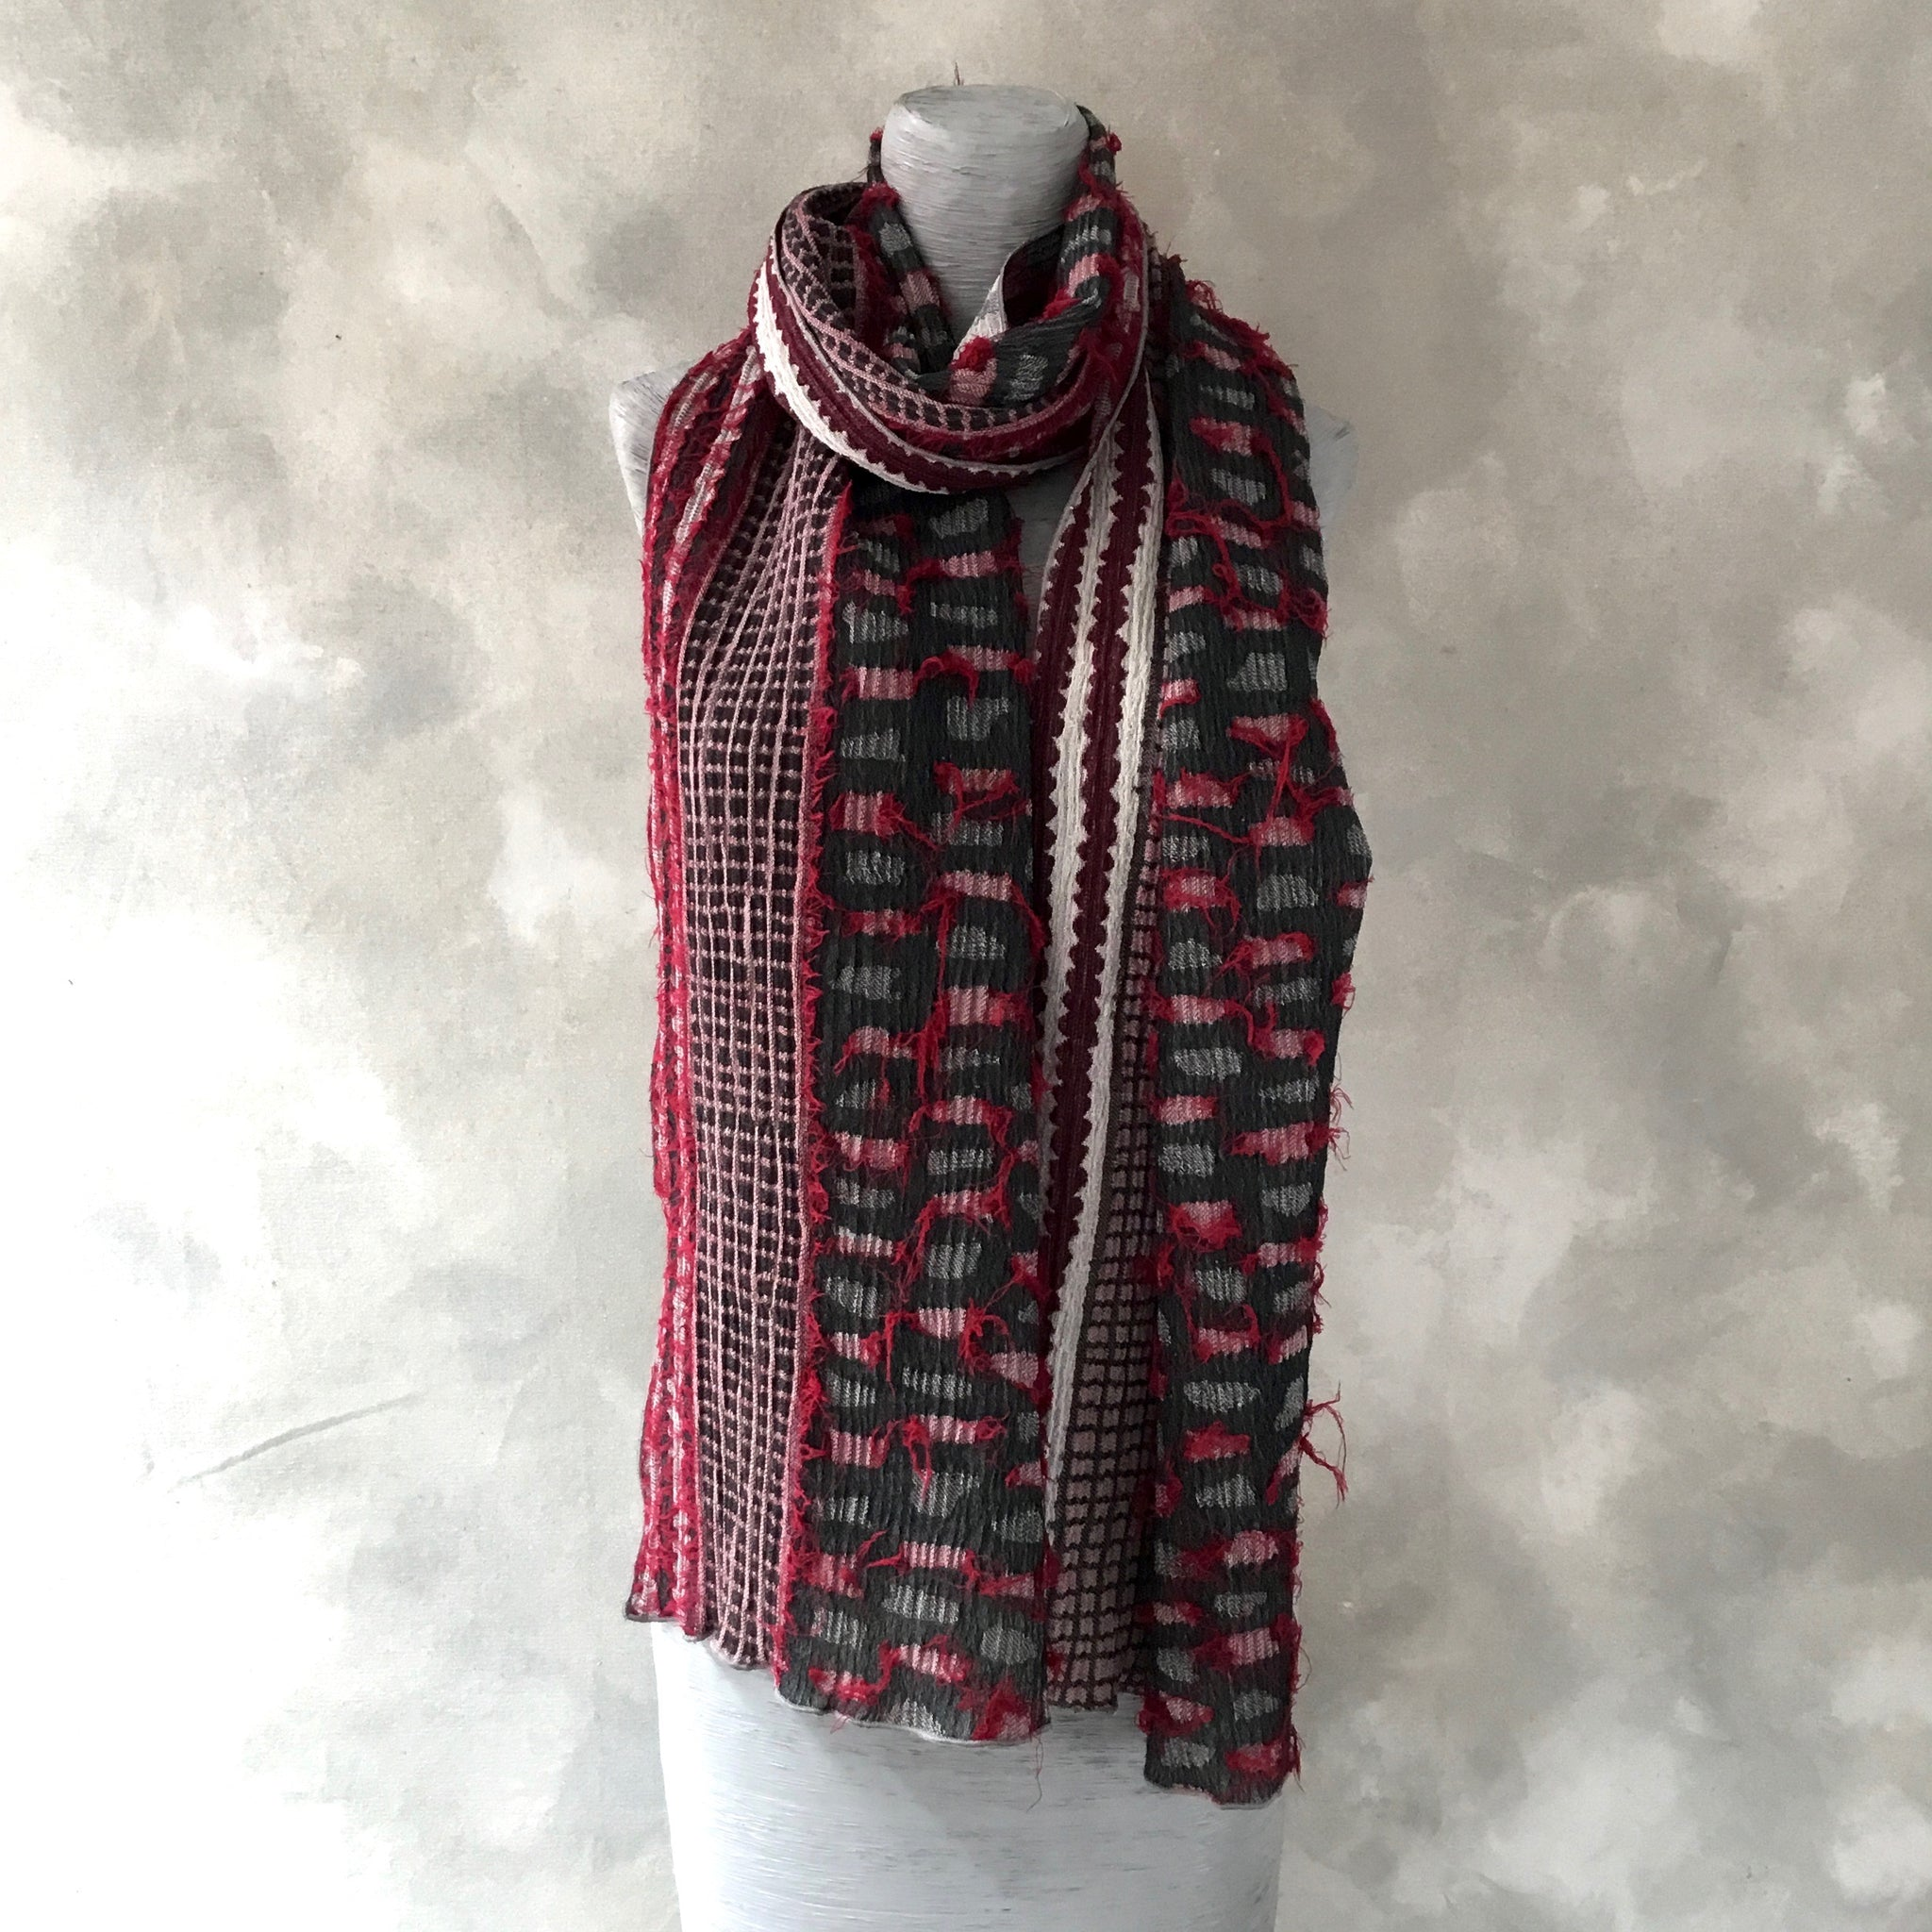 Nuno Red & Charcoal Cotton & Wool Scarf